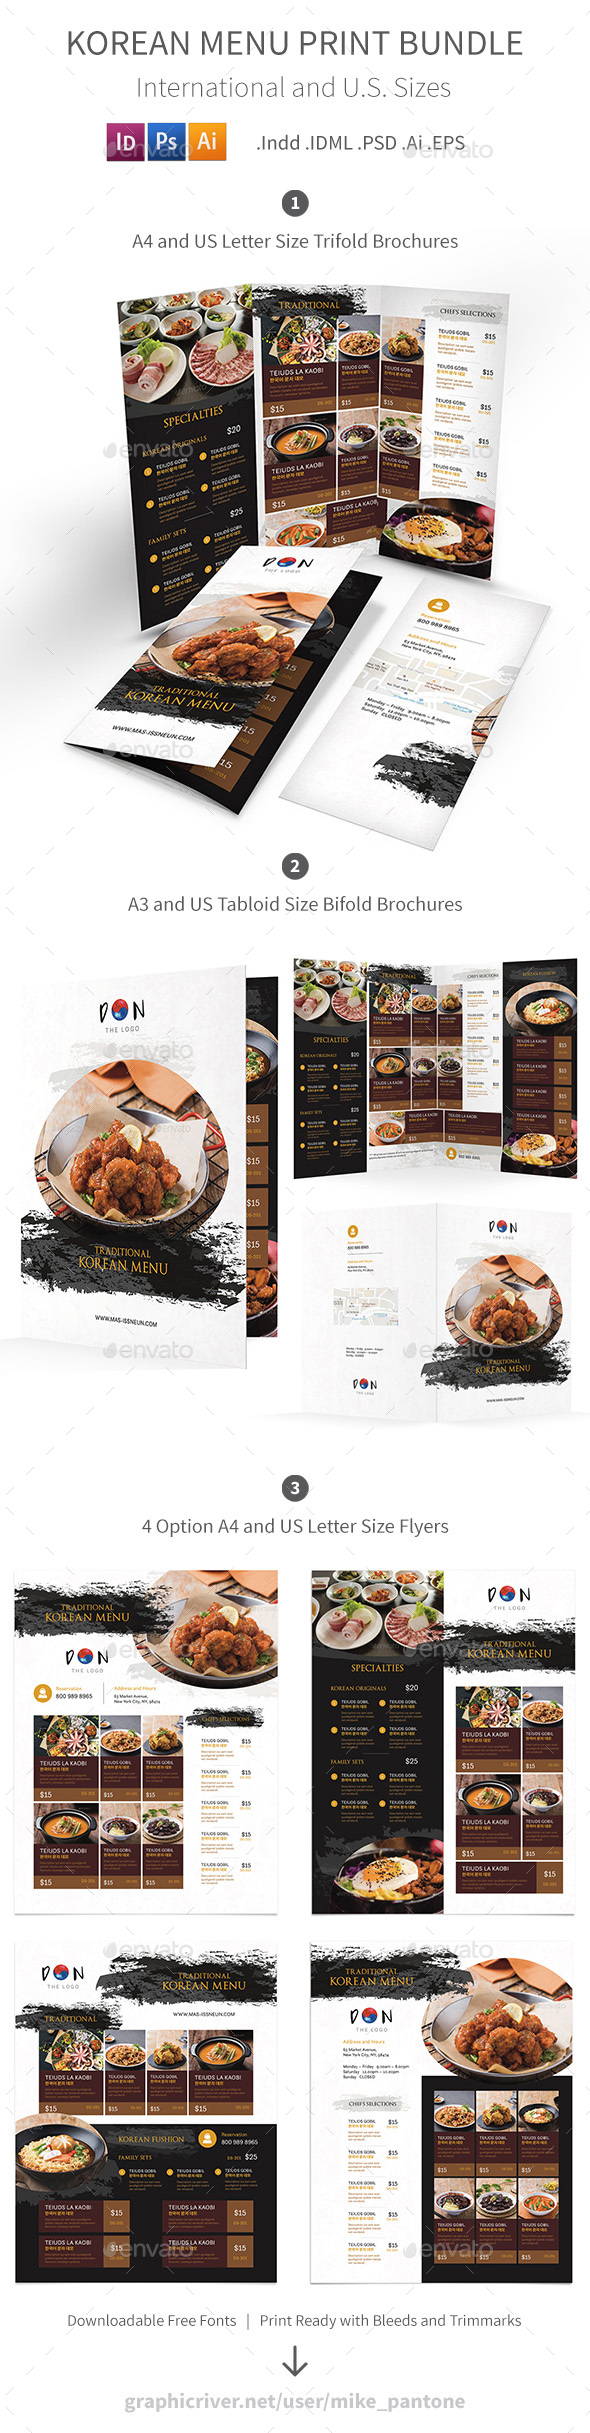 Korean Menu Print Bundle 2